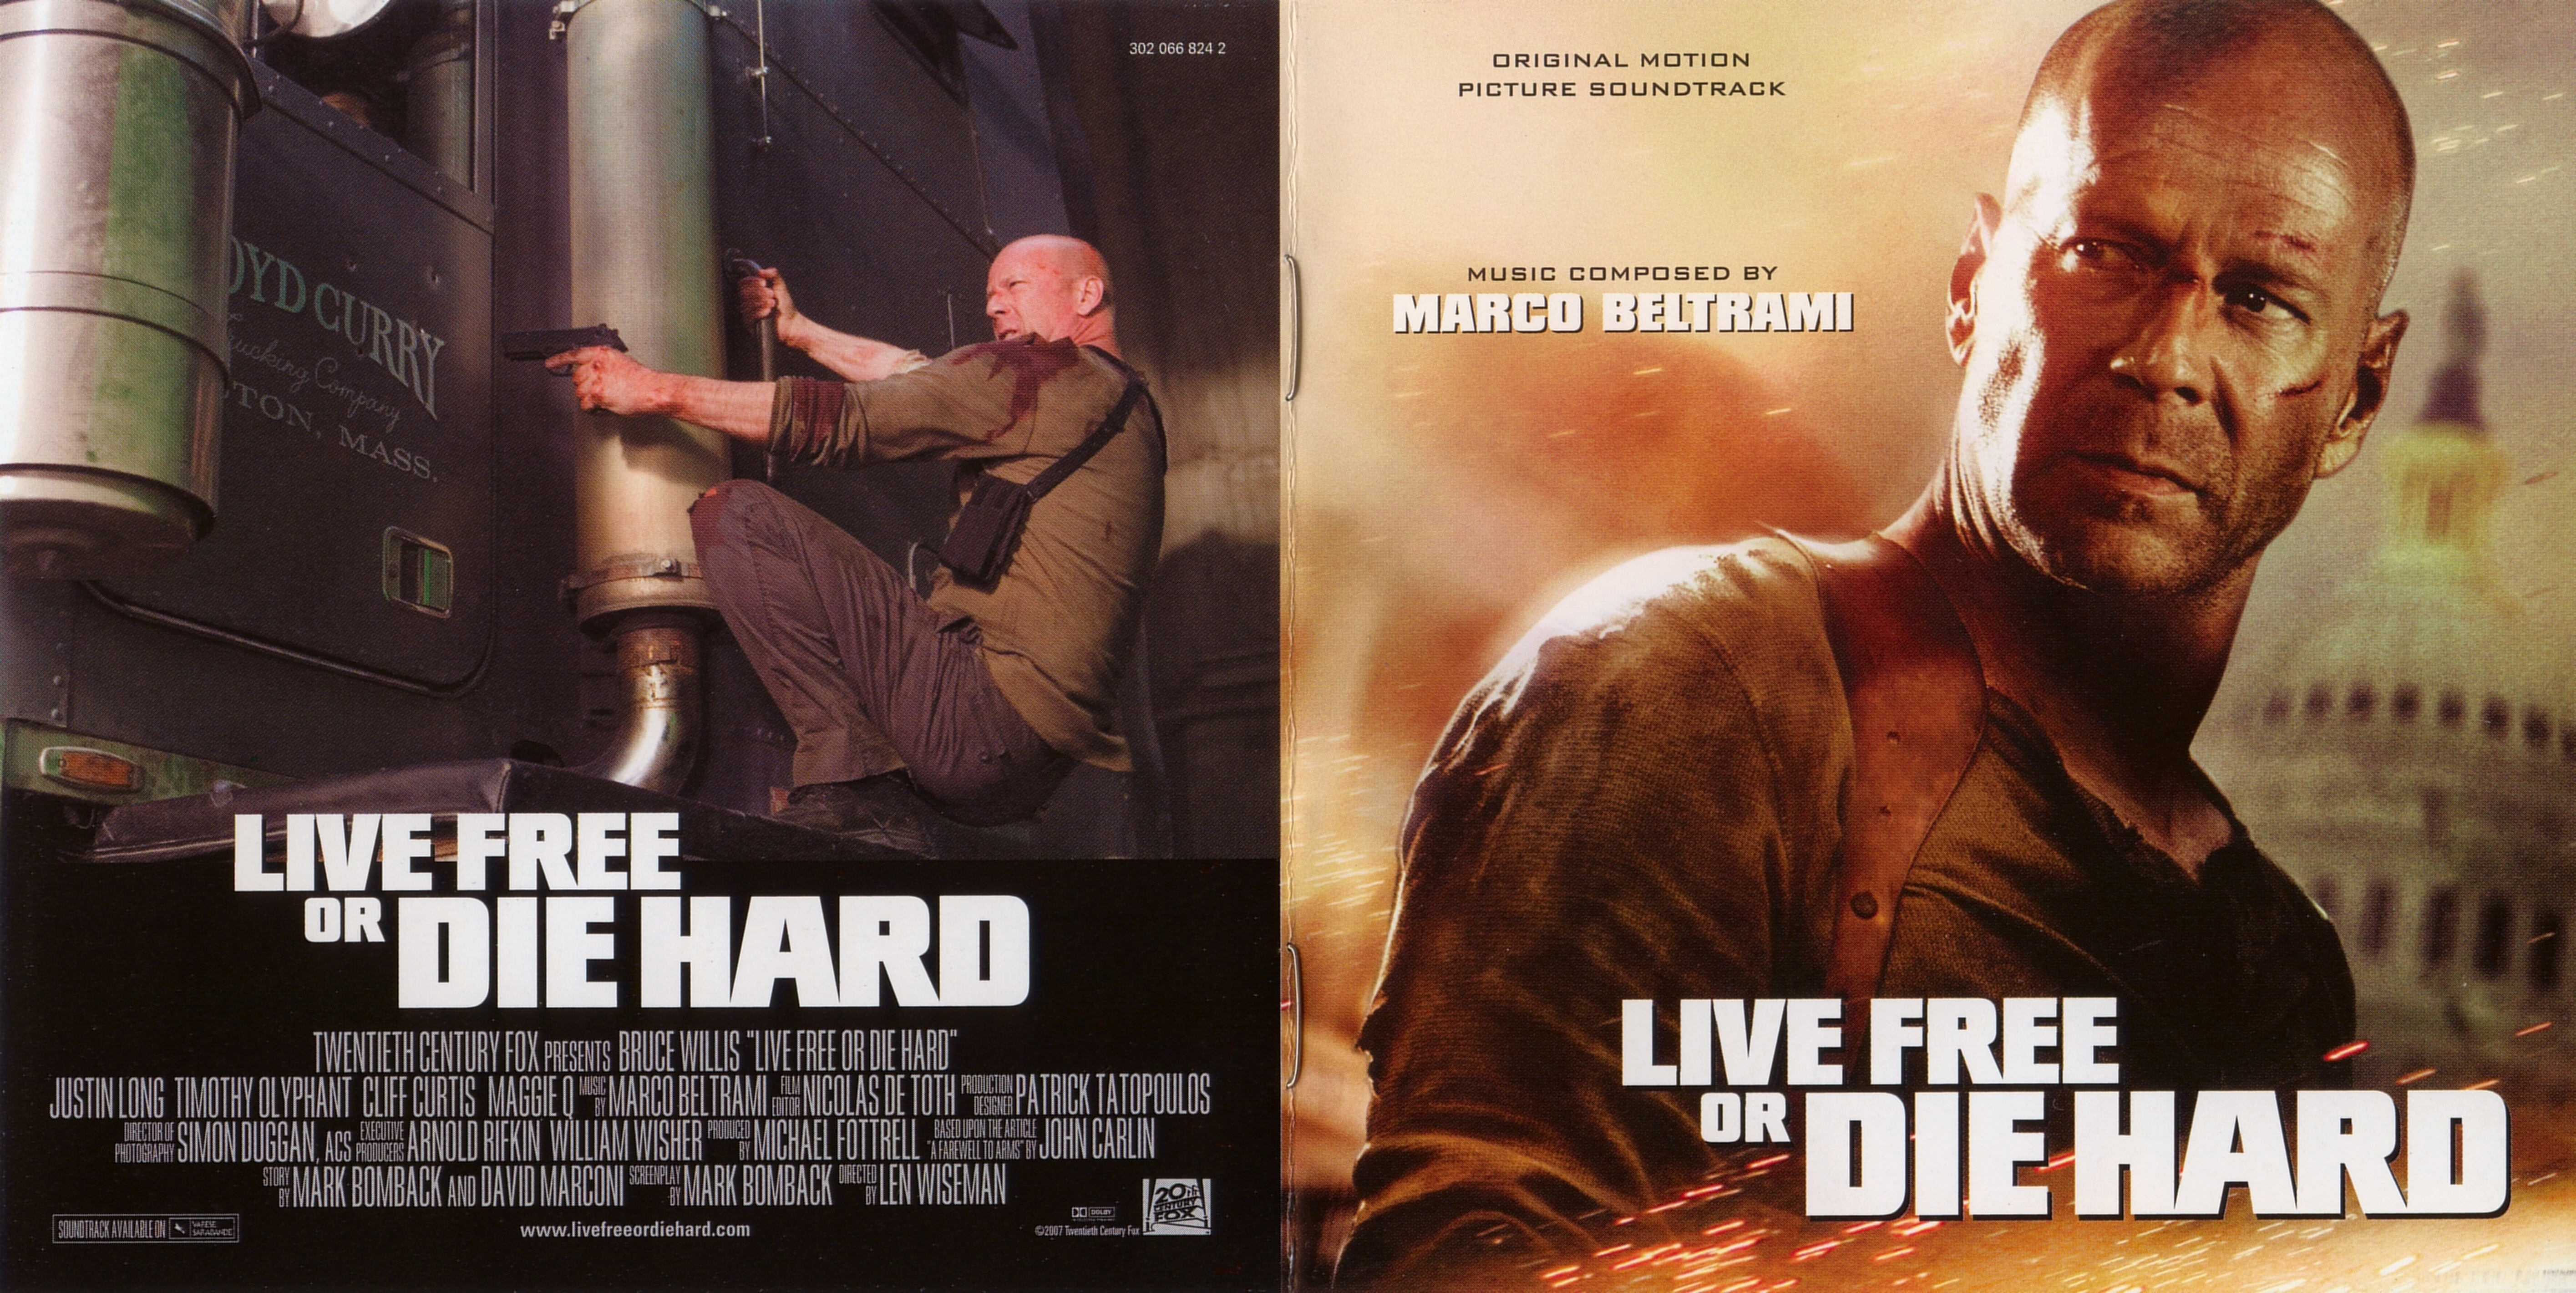 Live free die hard movie quotes